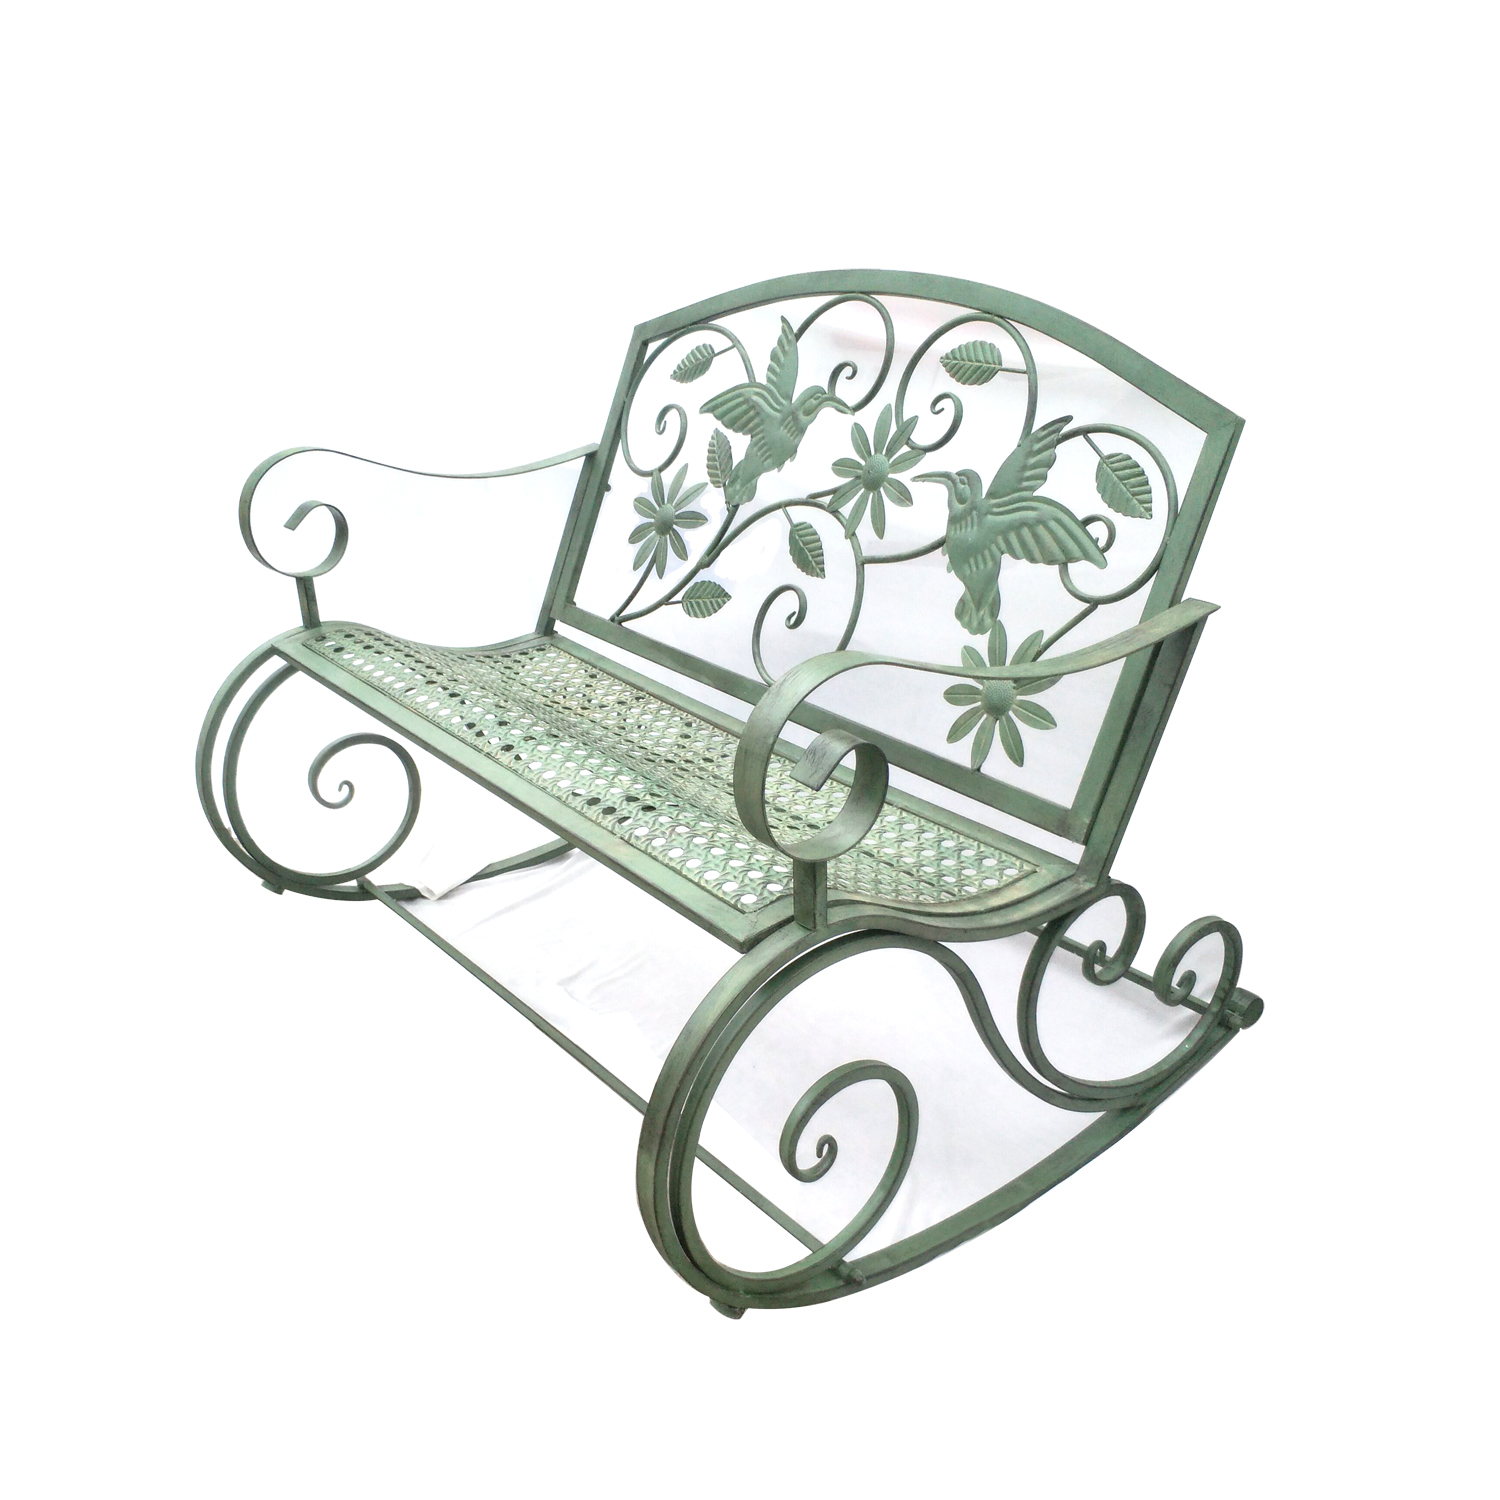 American Iron Art Retro Outdoor Rocking Chair Bench Courtyard Table And Chair Park Chair Courtyard Leisure Decoration